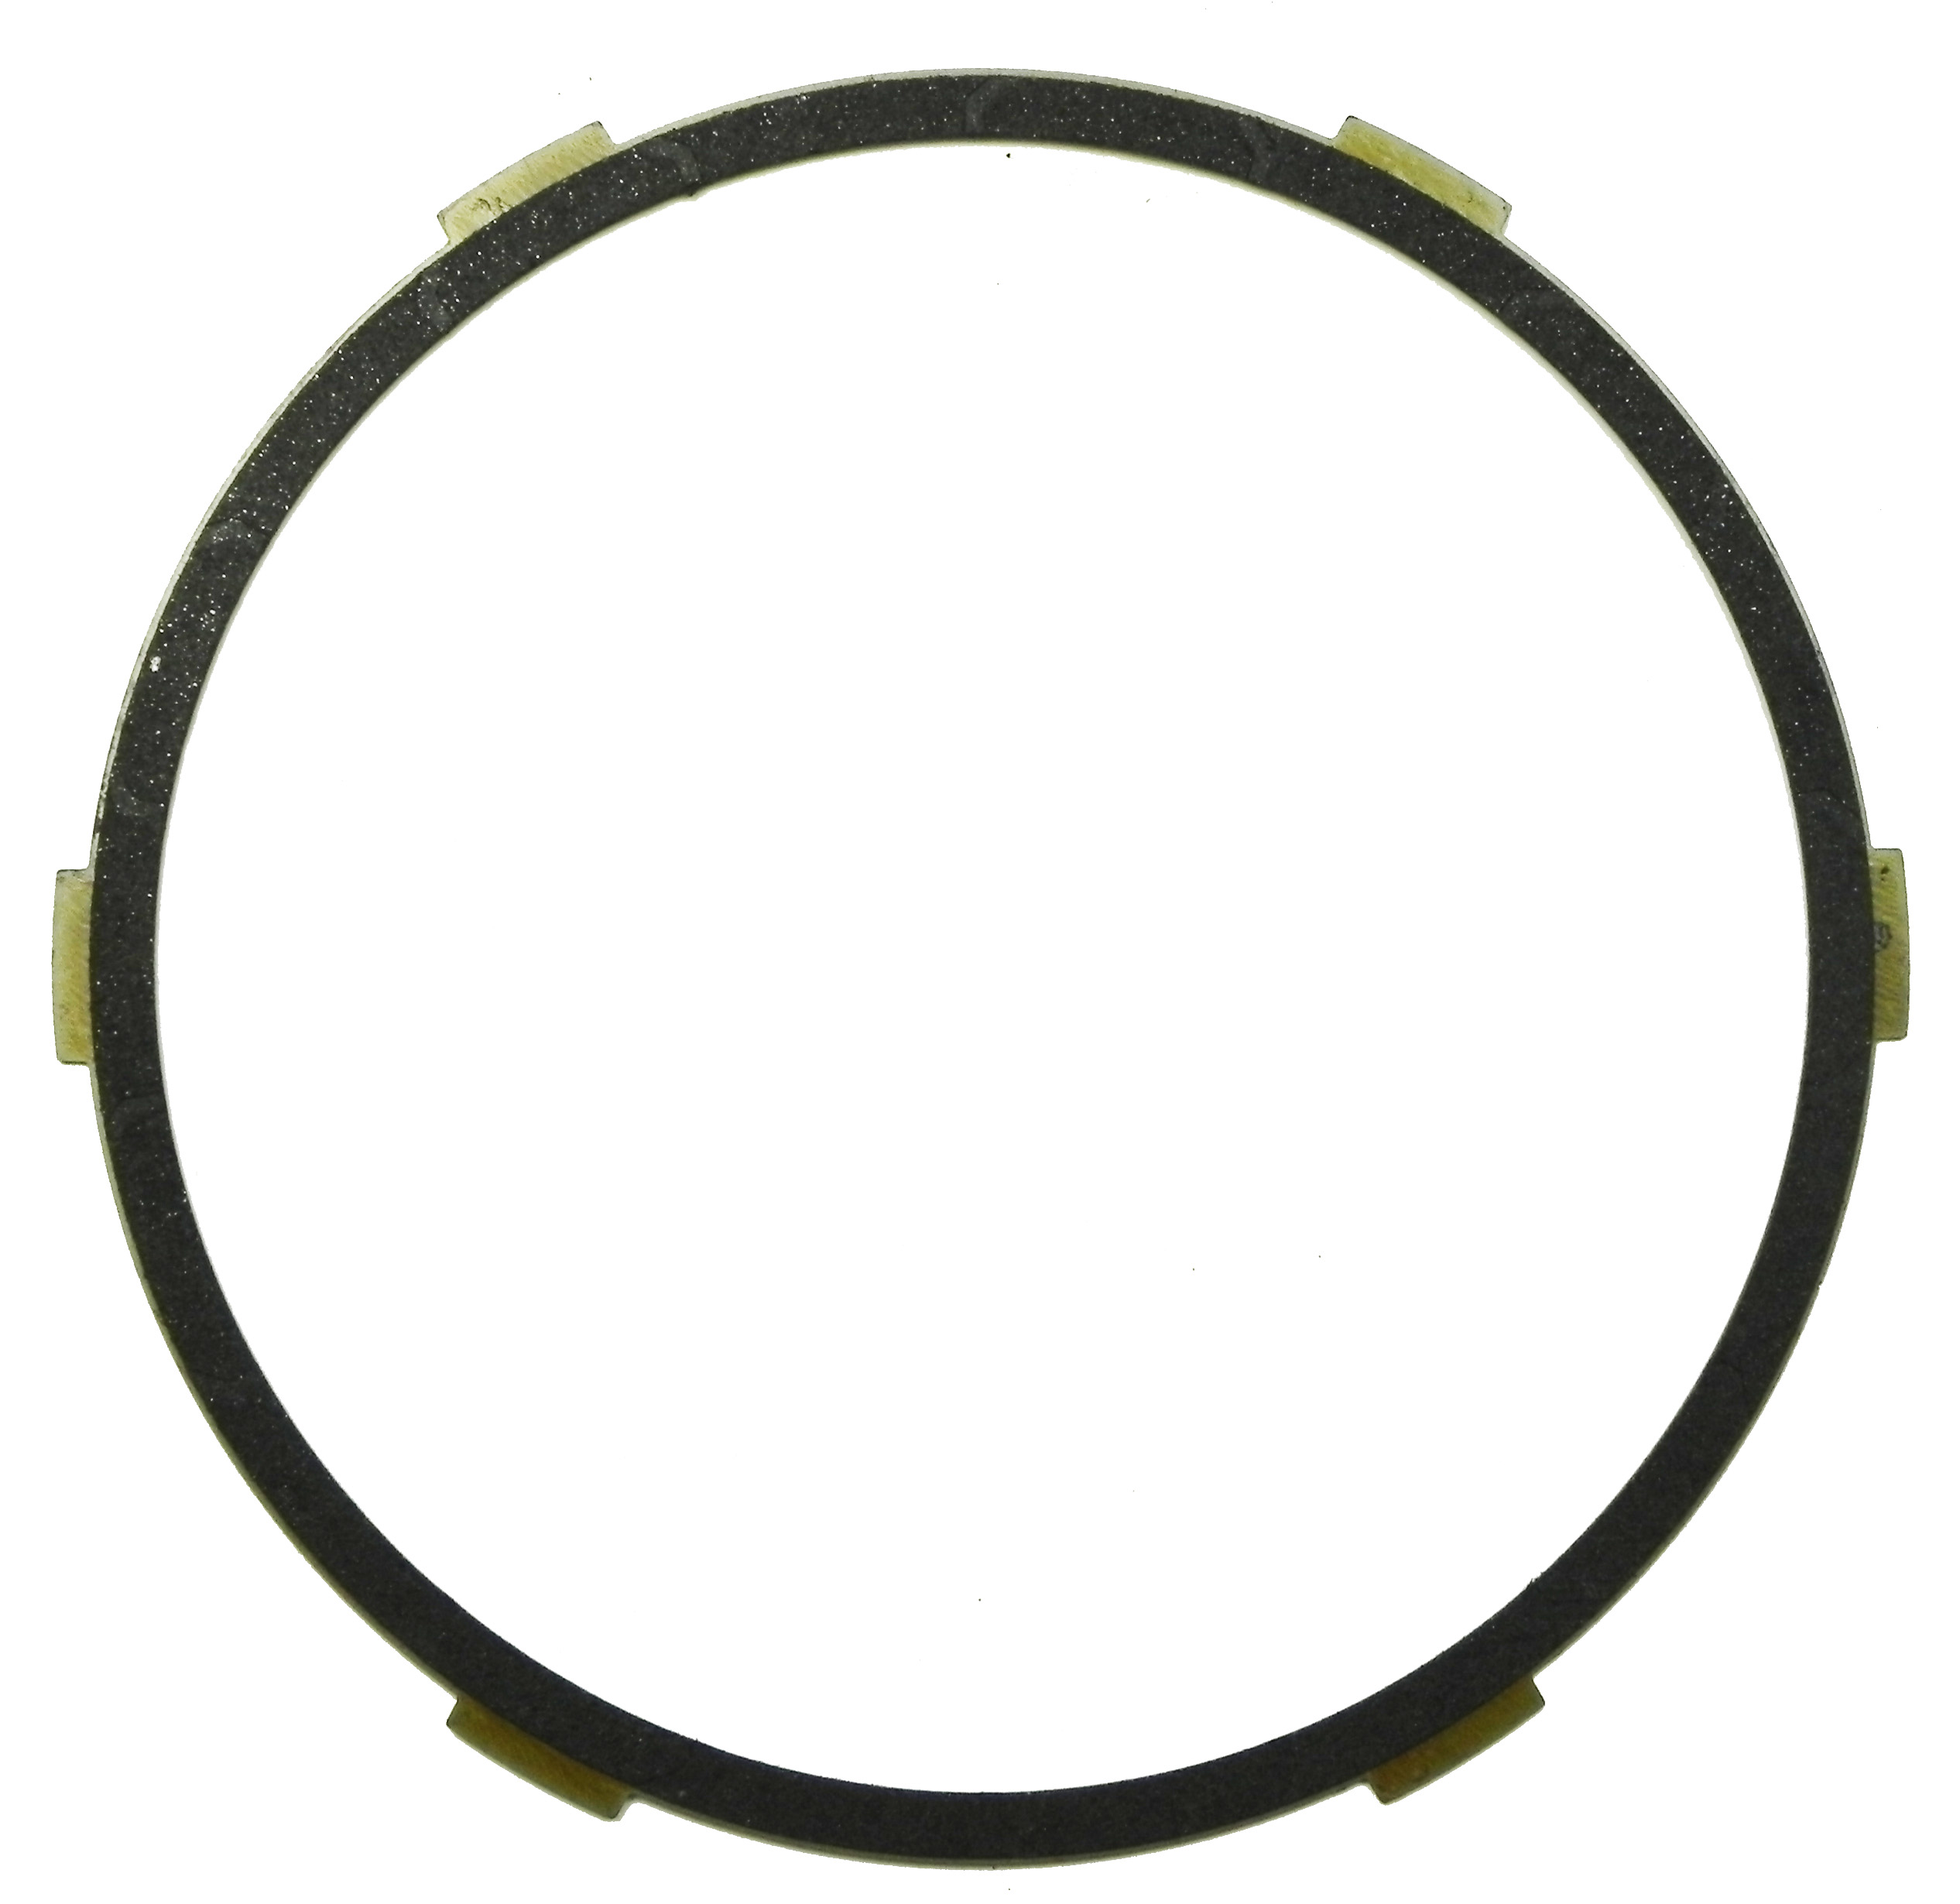 R558480 | 1999-ON Friction Clutch Plate High Energy 2nd, Coast, Single Sided, OD Spline, BMW X-3, X-5 Only High Energy